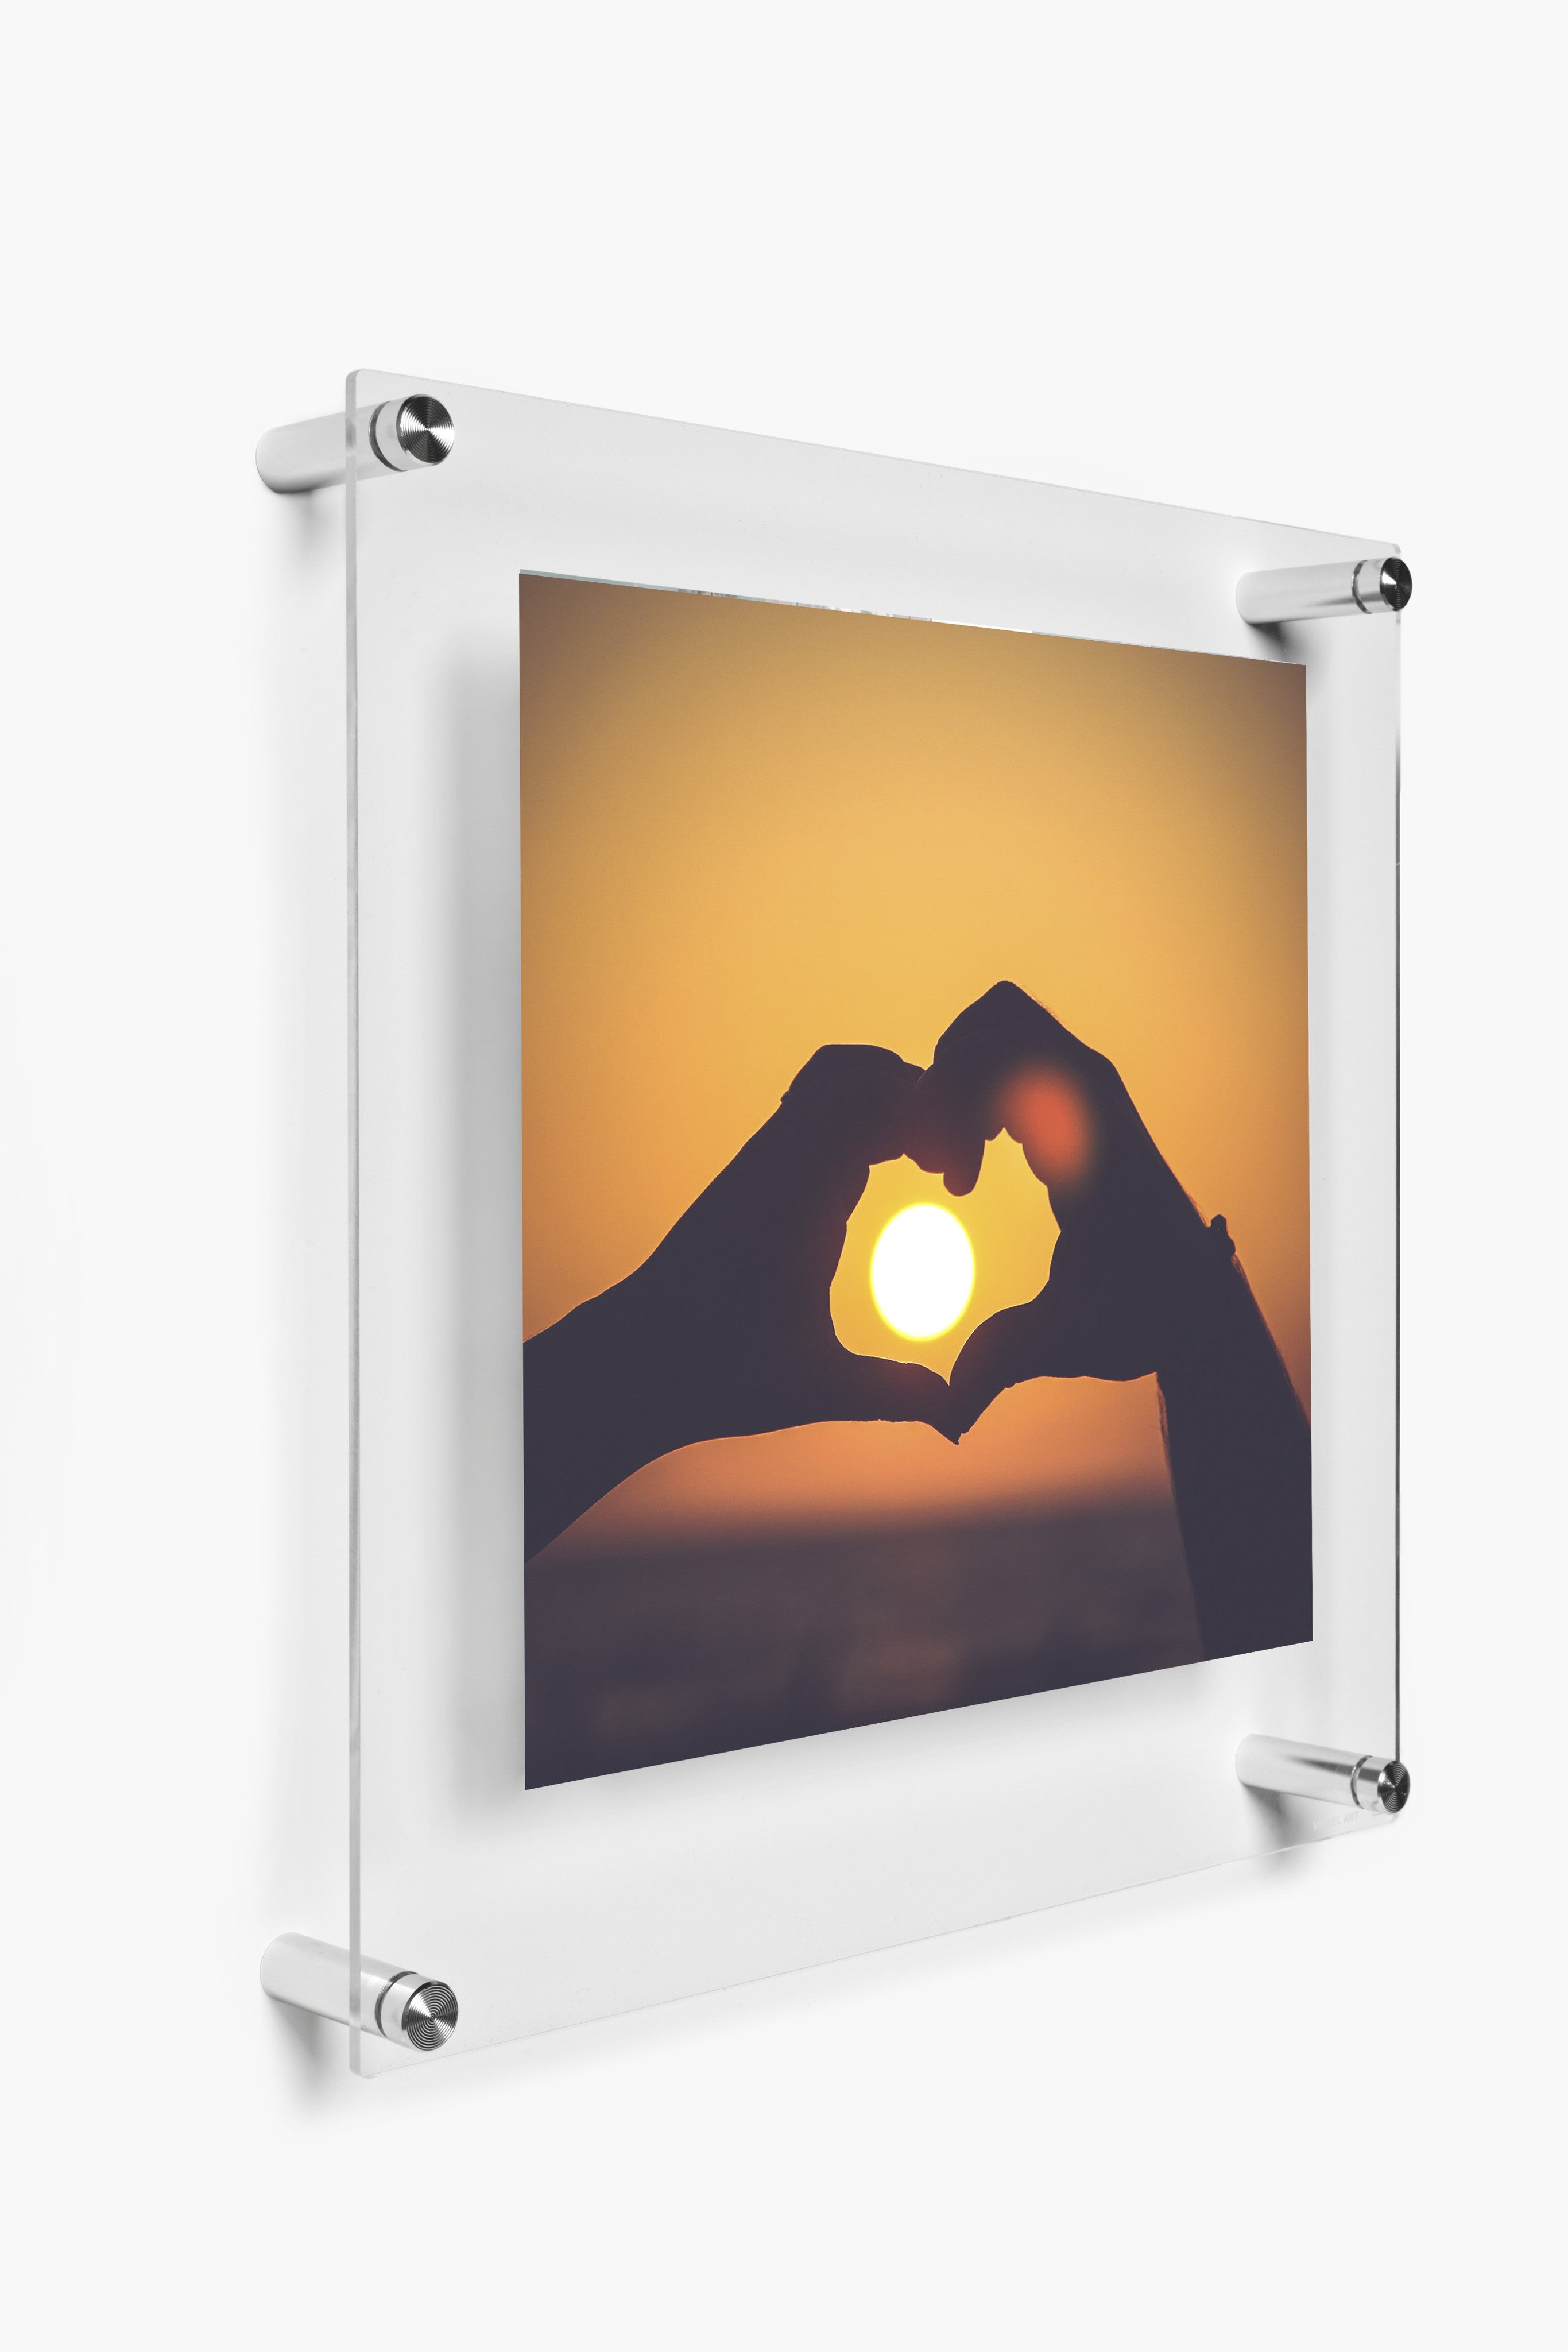 23x23 Double Panel Floating Wall Frame For 20x20 Images Wexel Art